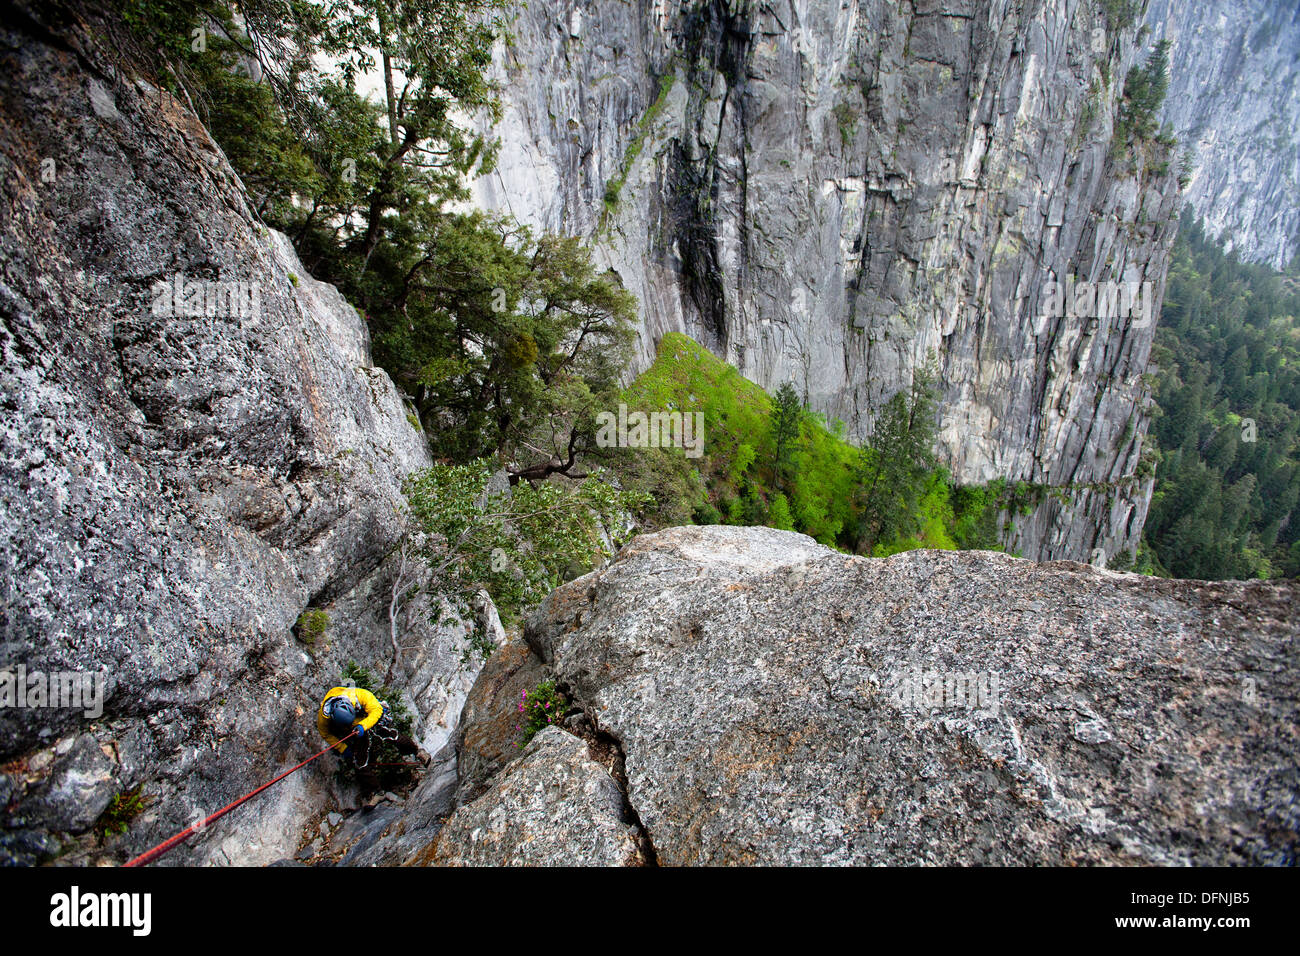 A male climber rappels off the Leaning Tower in Yosemite National Park, California. - Stock Image